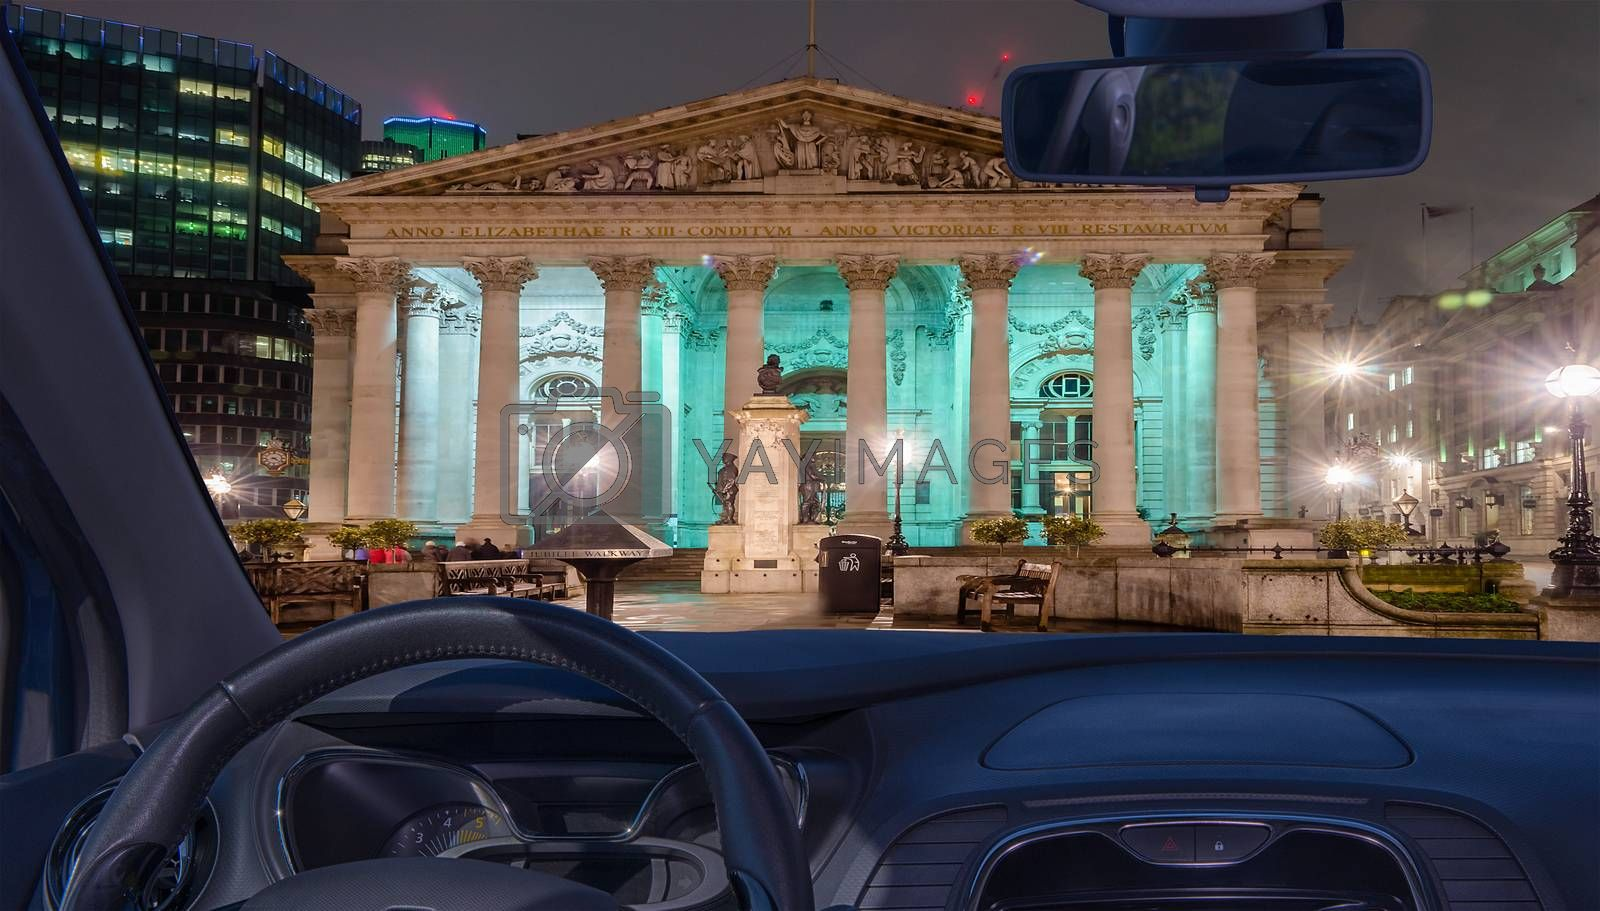 Looking through a car windshield with view of the Royal Exchange Building, London, UK